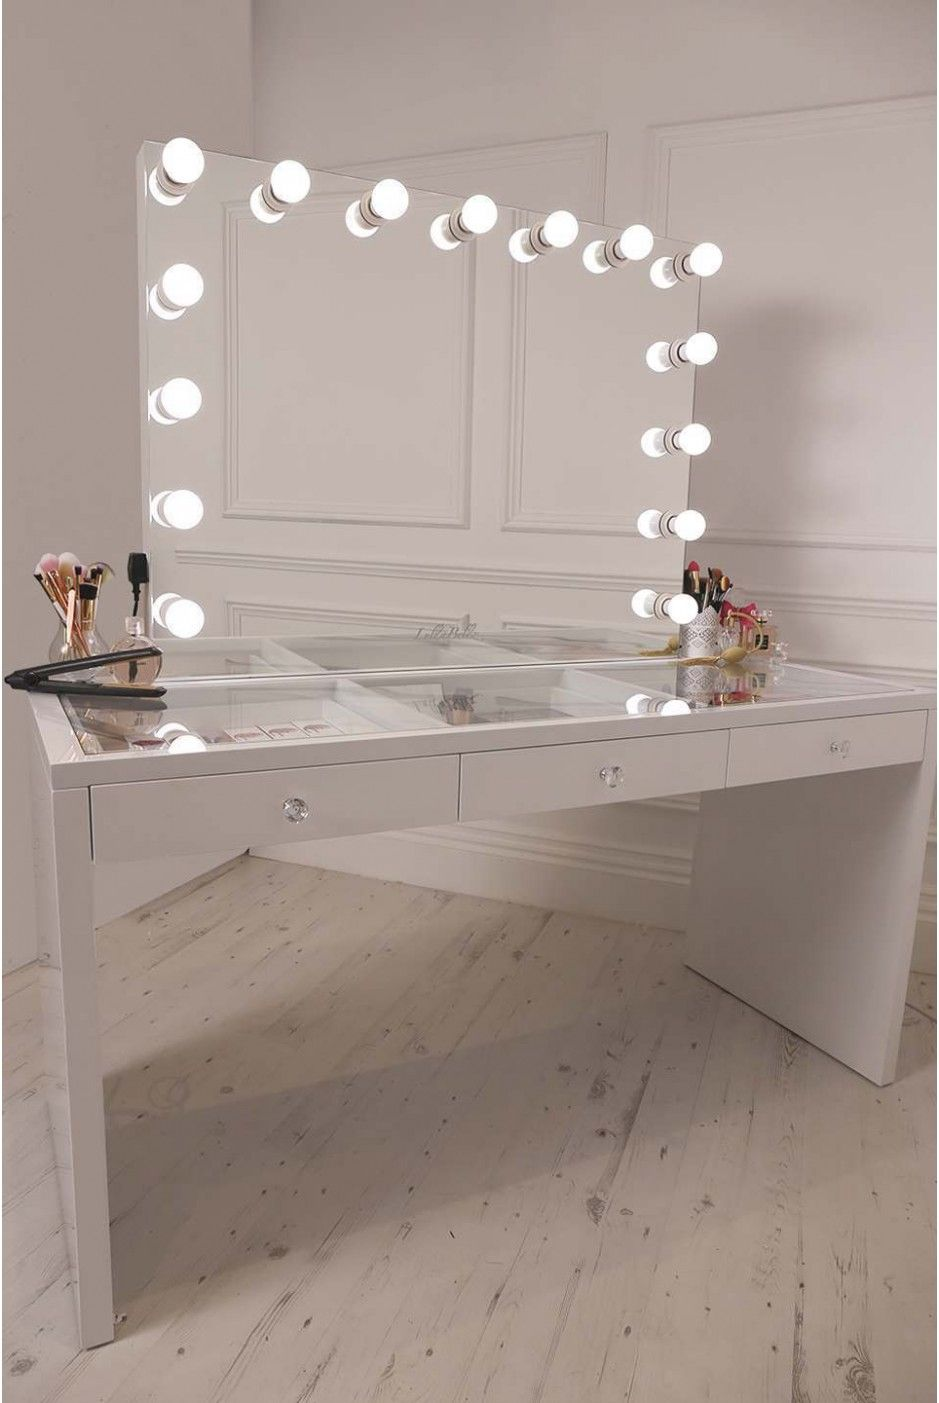 Diy vanity mirror with lights for bathroom and makeup station hogar diy vanity mirror with lights for bathroom and makeup station aloadofball Gallery